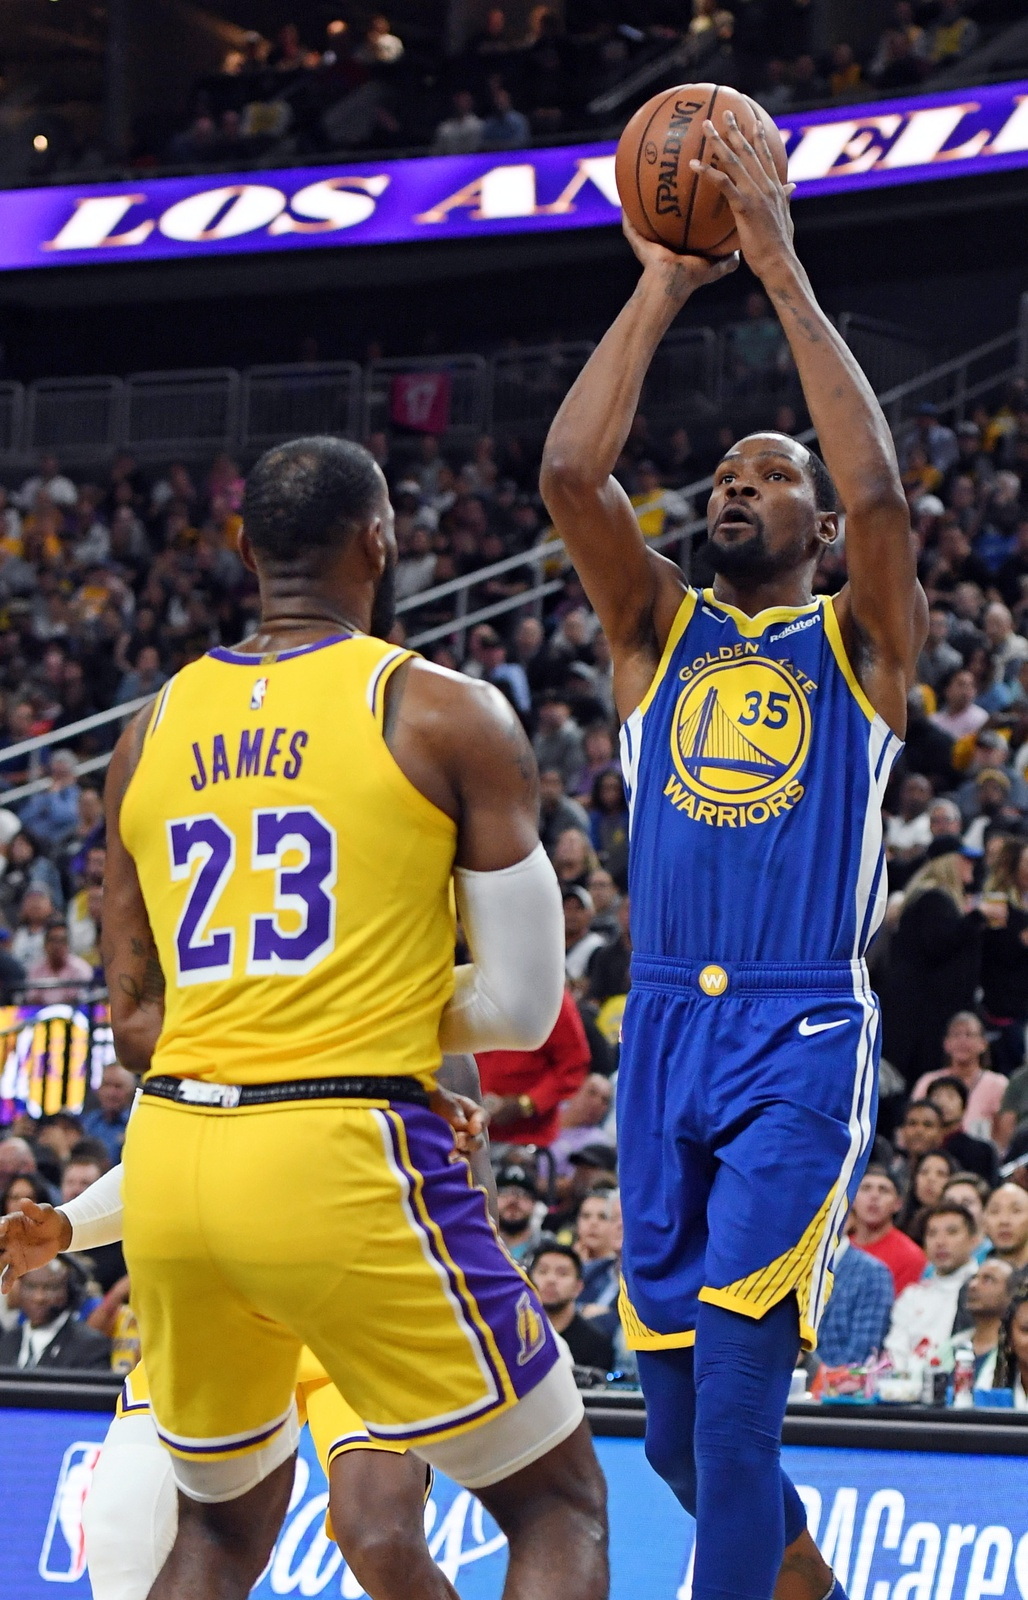 Kevin Durant #35 of the Golden State Warriors shoots against LeBron James #23 of the Los Angeles Lakers during their preseason game at T-Mobile Arena on October 10, 2018 in Las Vegas, Nevada.